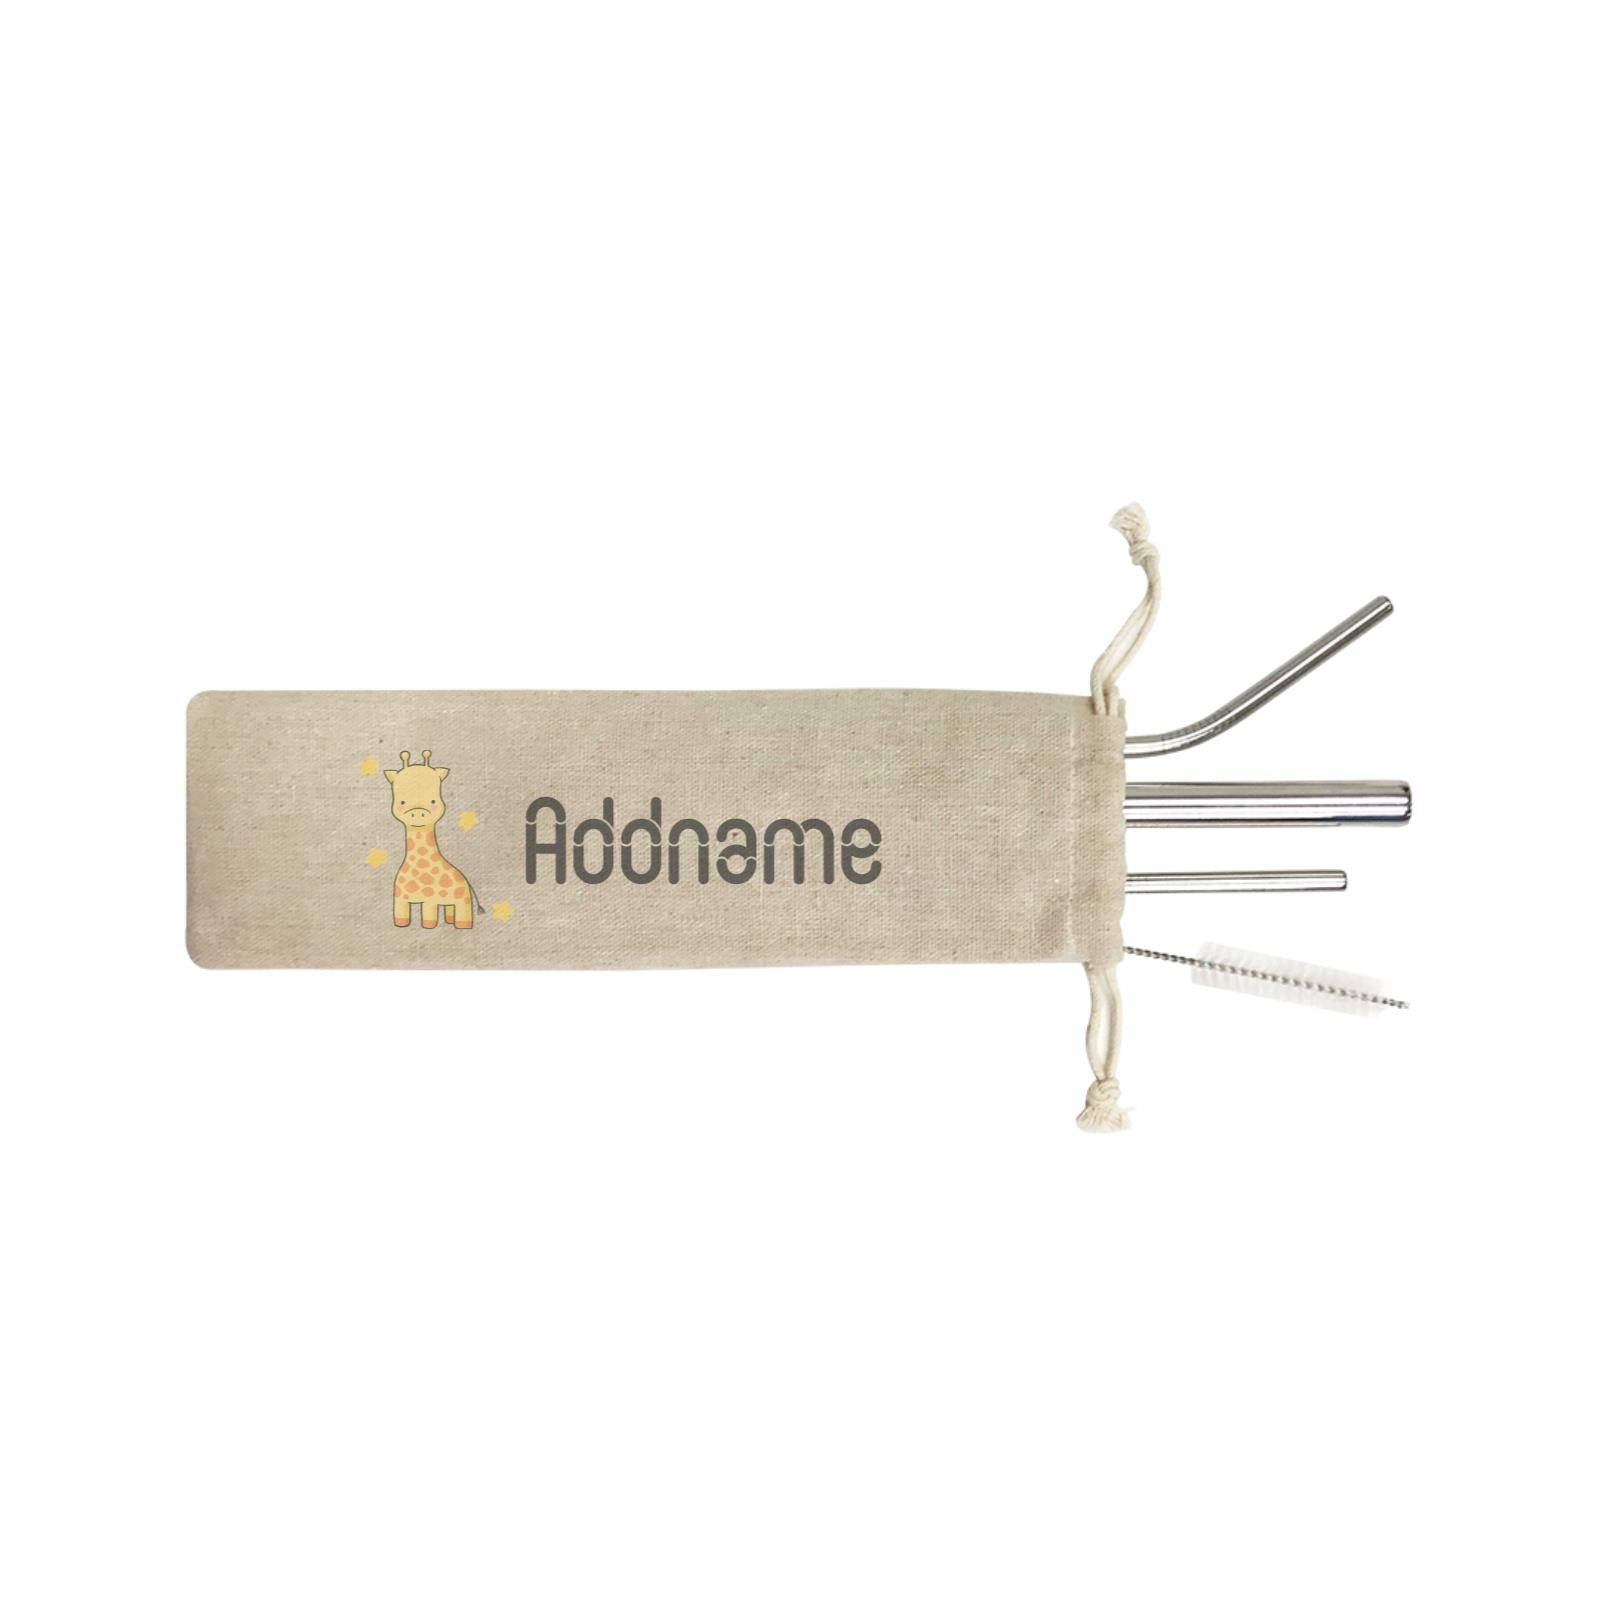 Cute Hand Drawn Style Giraffe Addname ST SZP 4-In-1 Stainless Steel Straw Set in Satchel